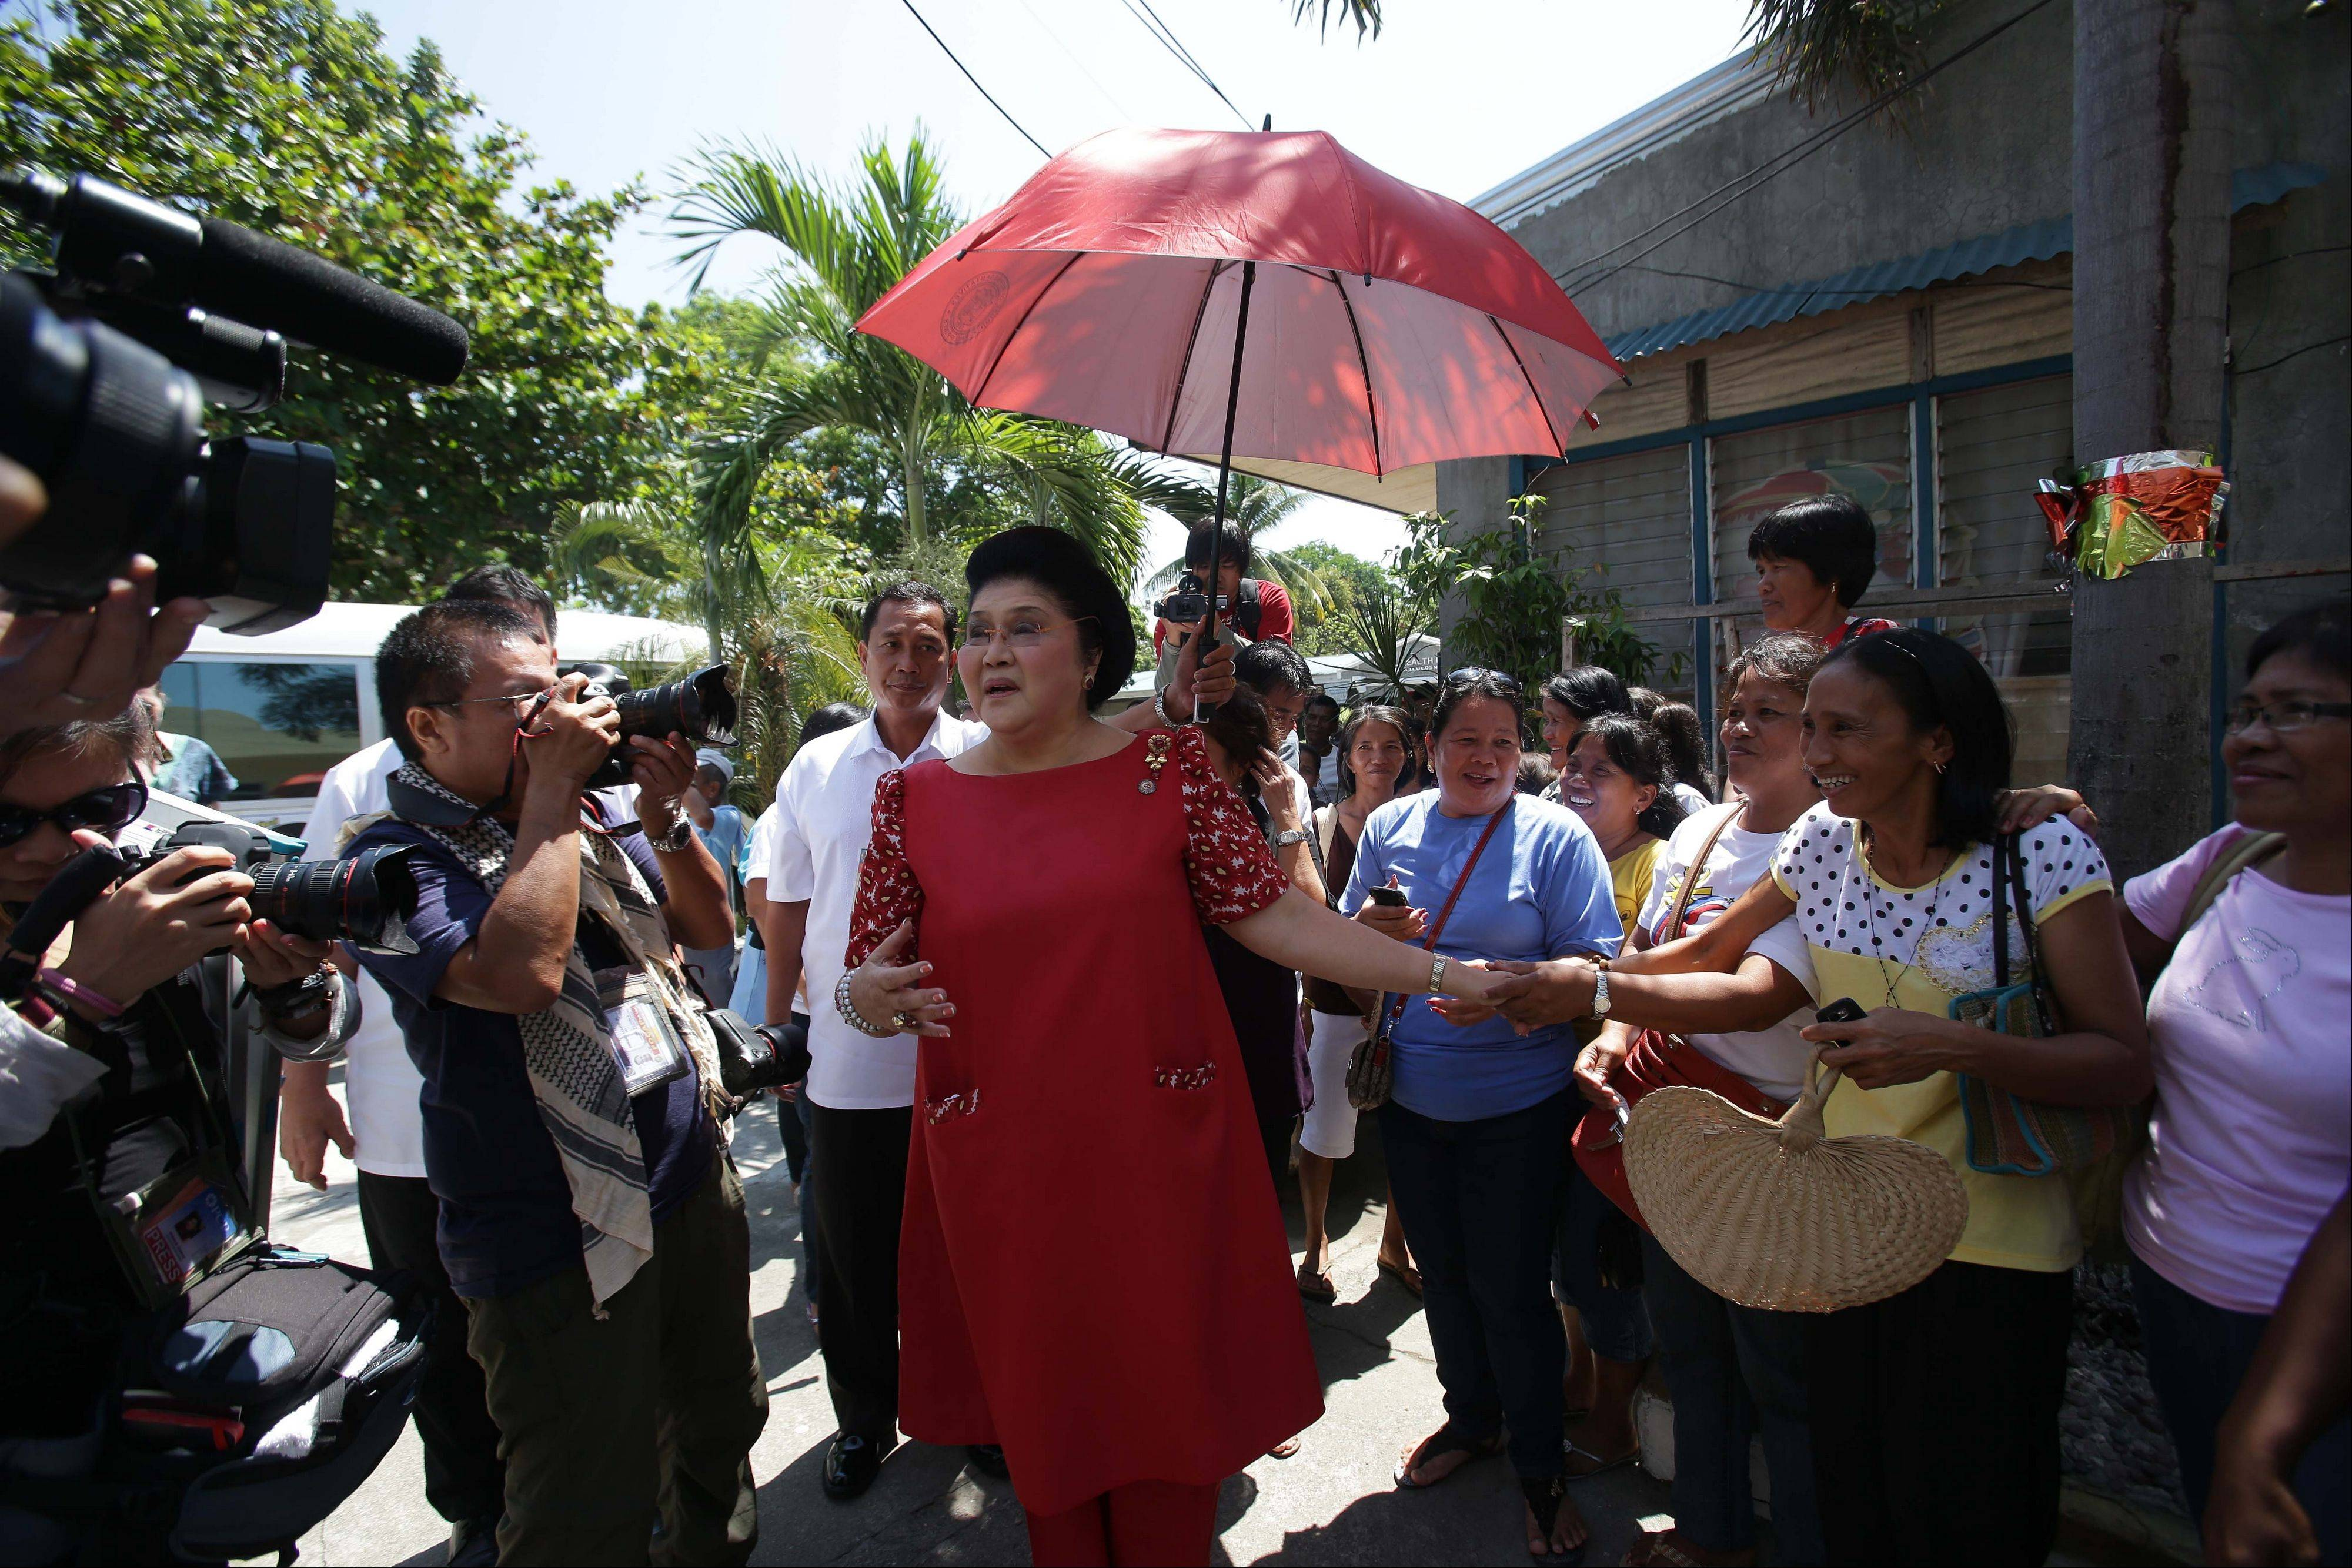 Former Philippine First Lady Imelda Marcos, center, greets supporters last Sunday during an electoral campaign in Ilocos Norte province, northern Philippines. Twenty-seven years after her dictator husband was ousted by a public revolt, Imelda Marcos has emerged as the Philippines� ultimate political survivor.